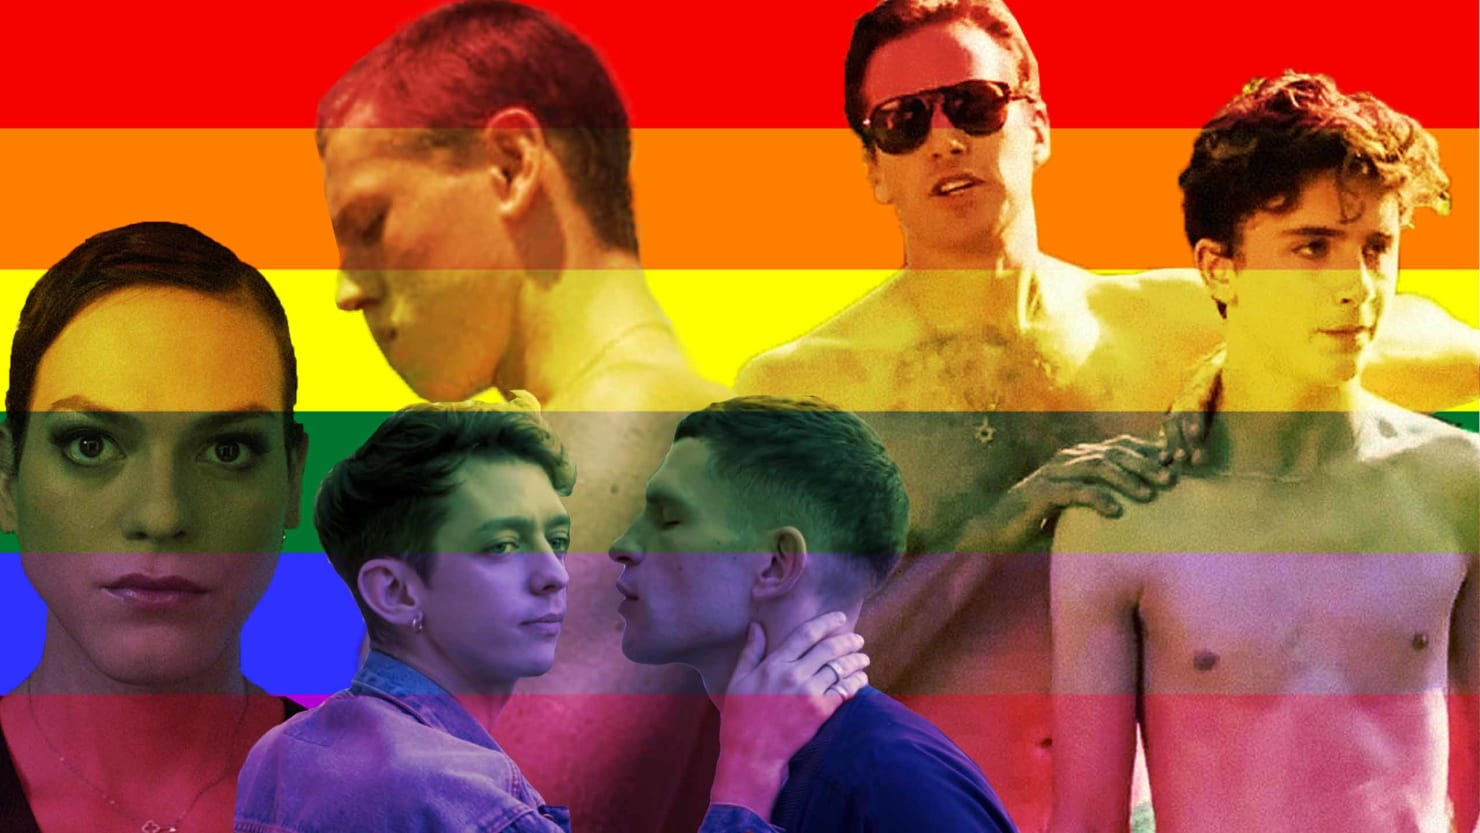 beyond the peach sex: the remarkable year in lgbt film